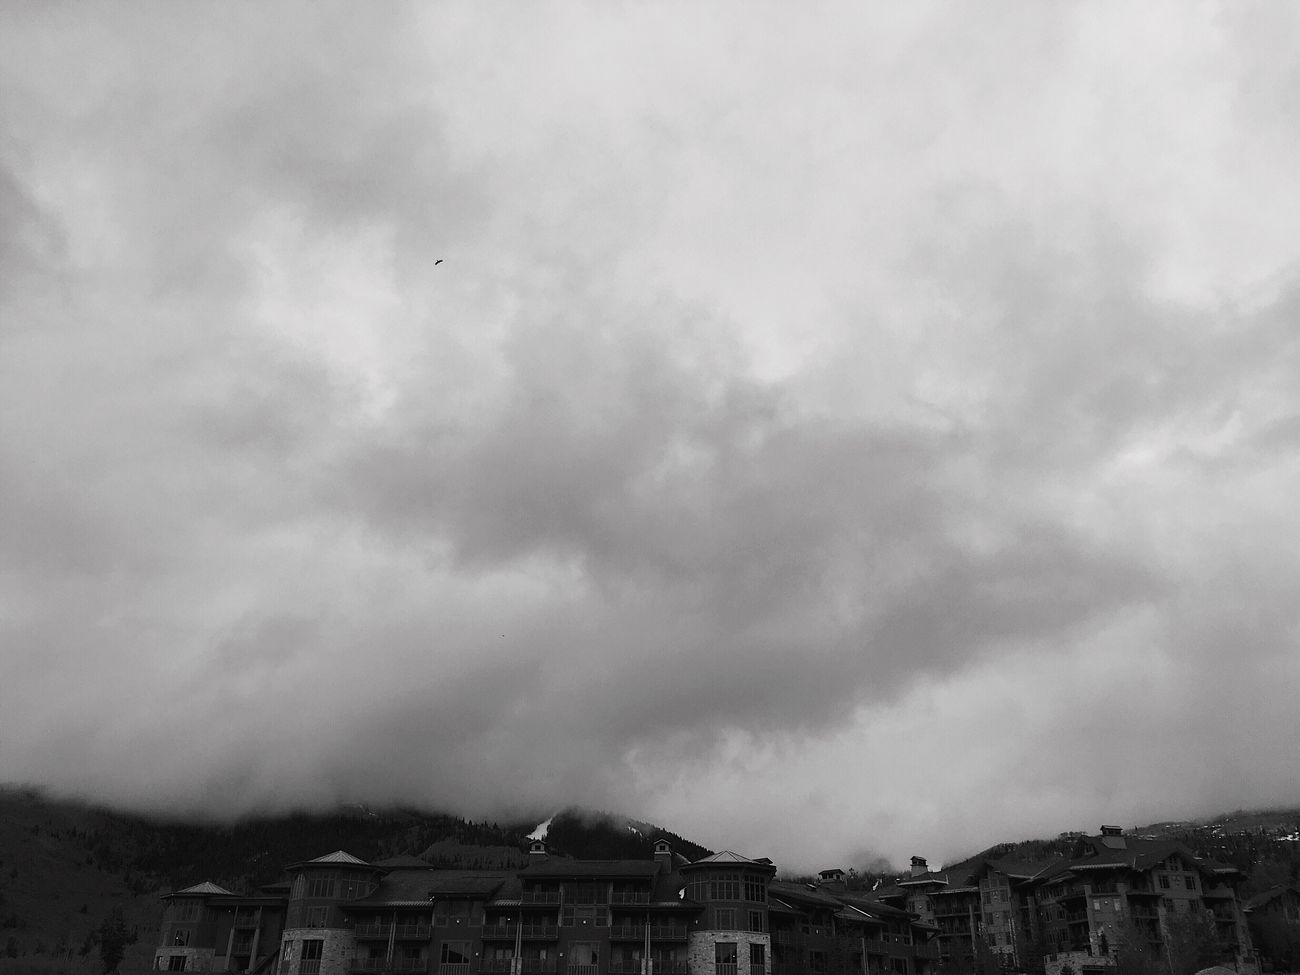 low & heavy clouds this evening. lost mountain tops. Park City, Utah